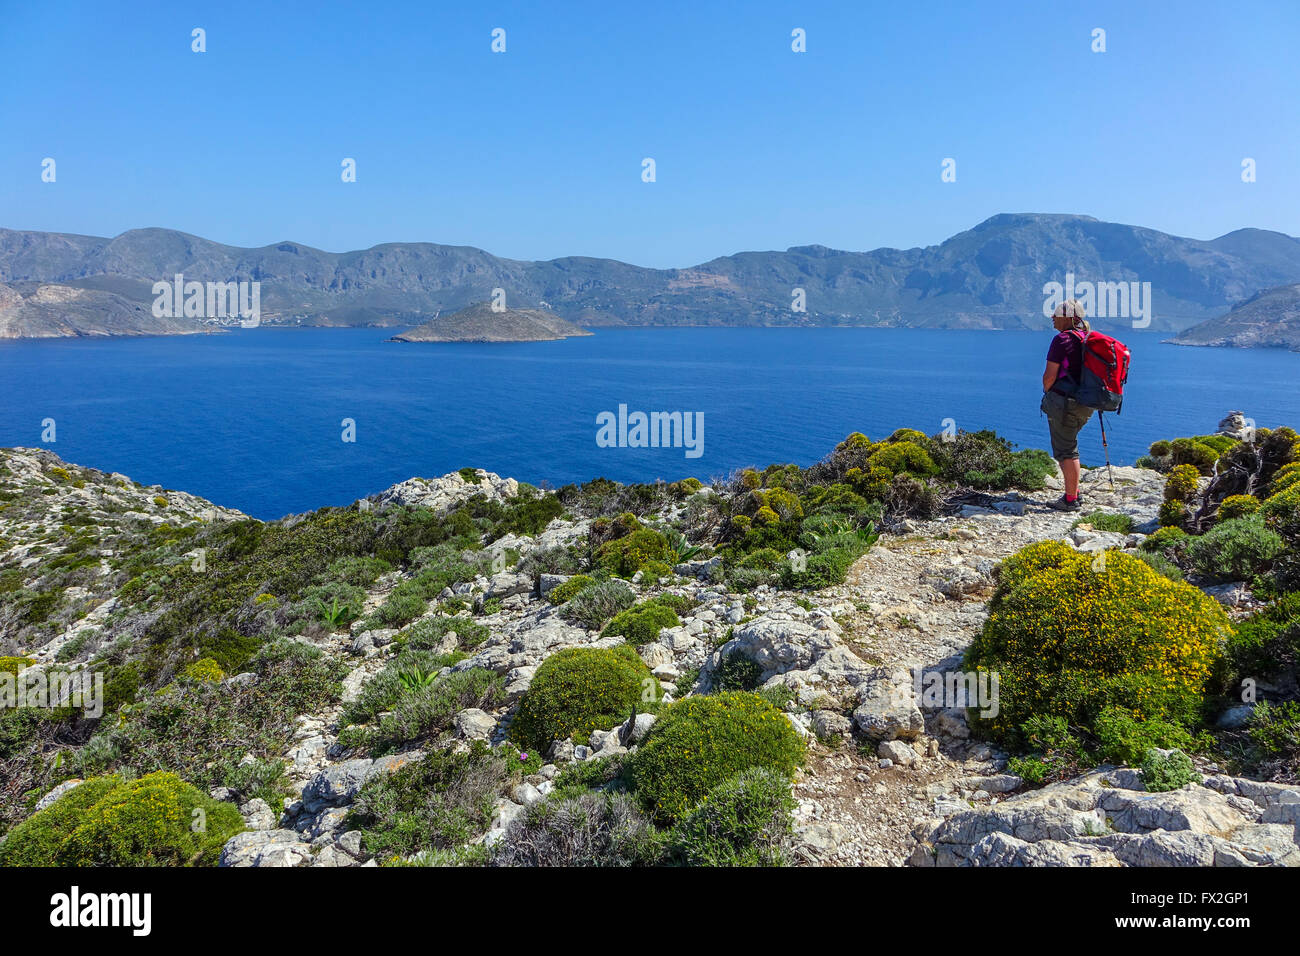 Female walker with red rucksack, Blue sea and mountains at Emborios Bay Kalymnos, Greece - Stock Image